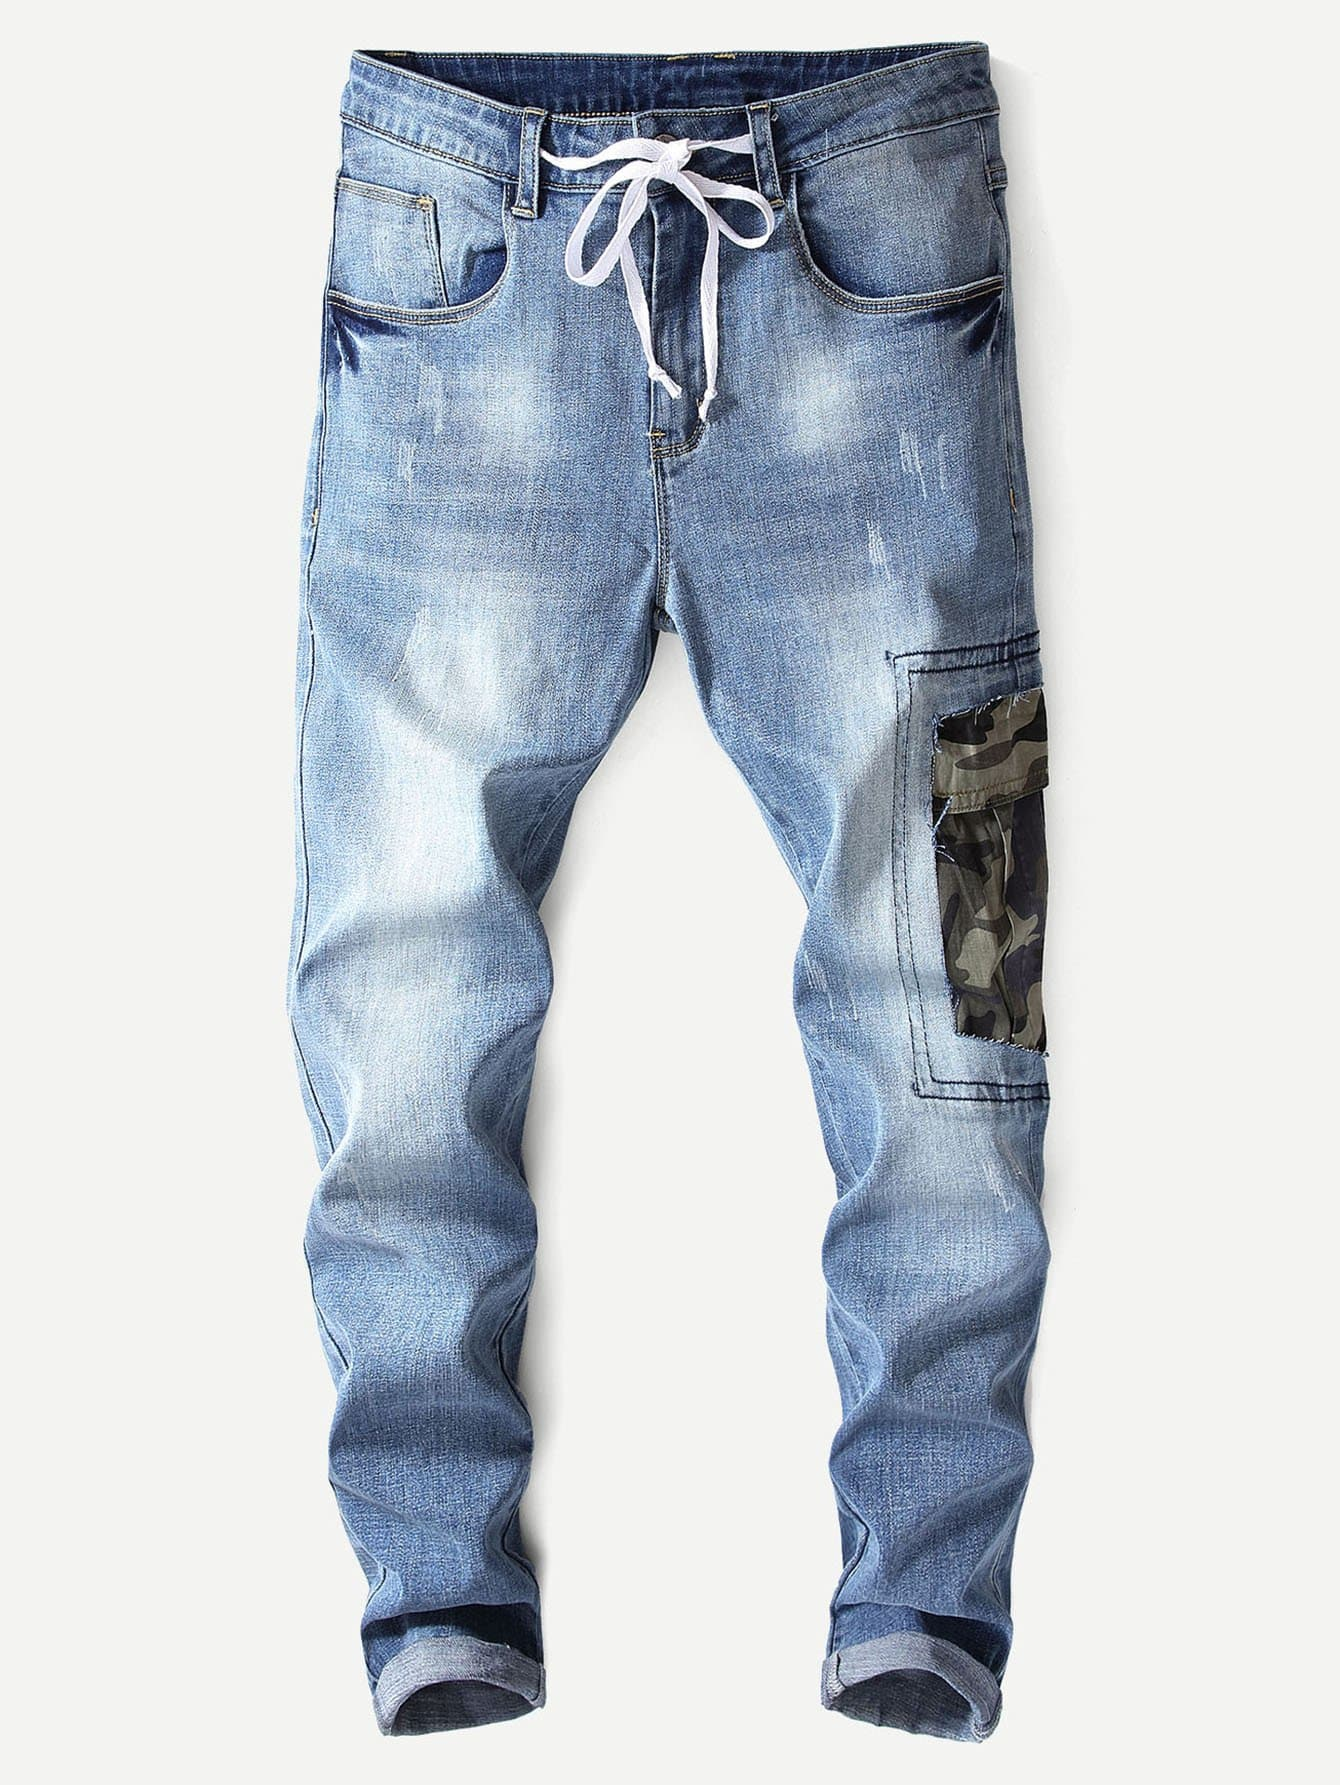 Men Camo Print Washed Jeans Men Camo Print Washed Jeans